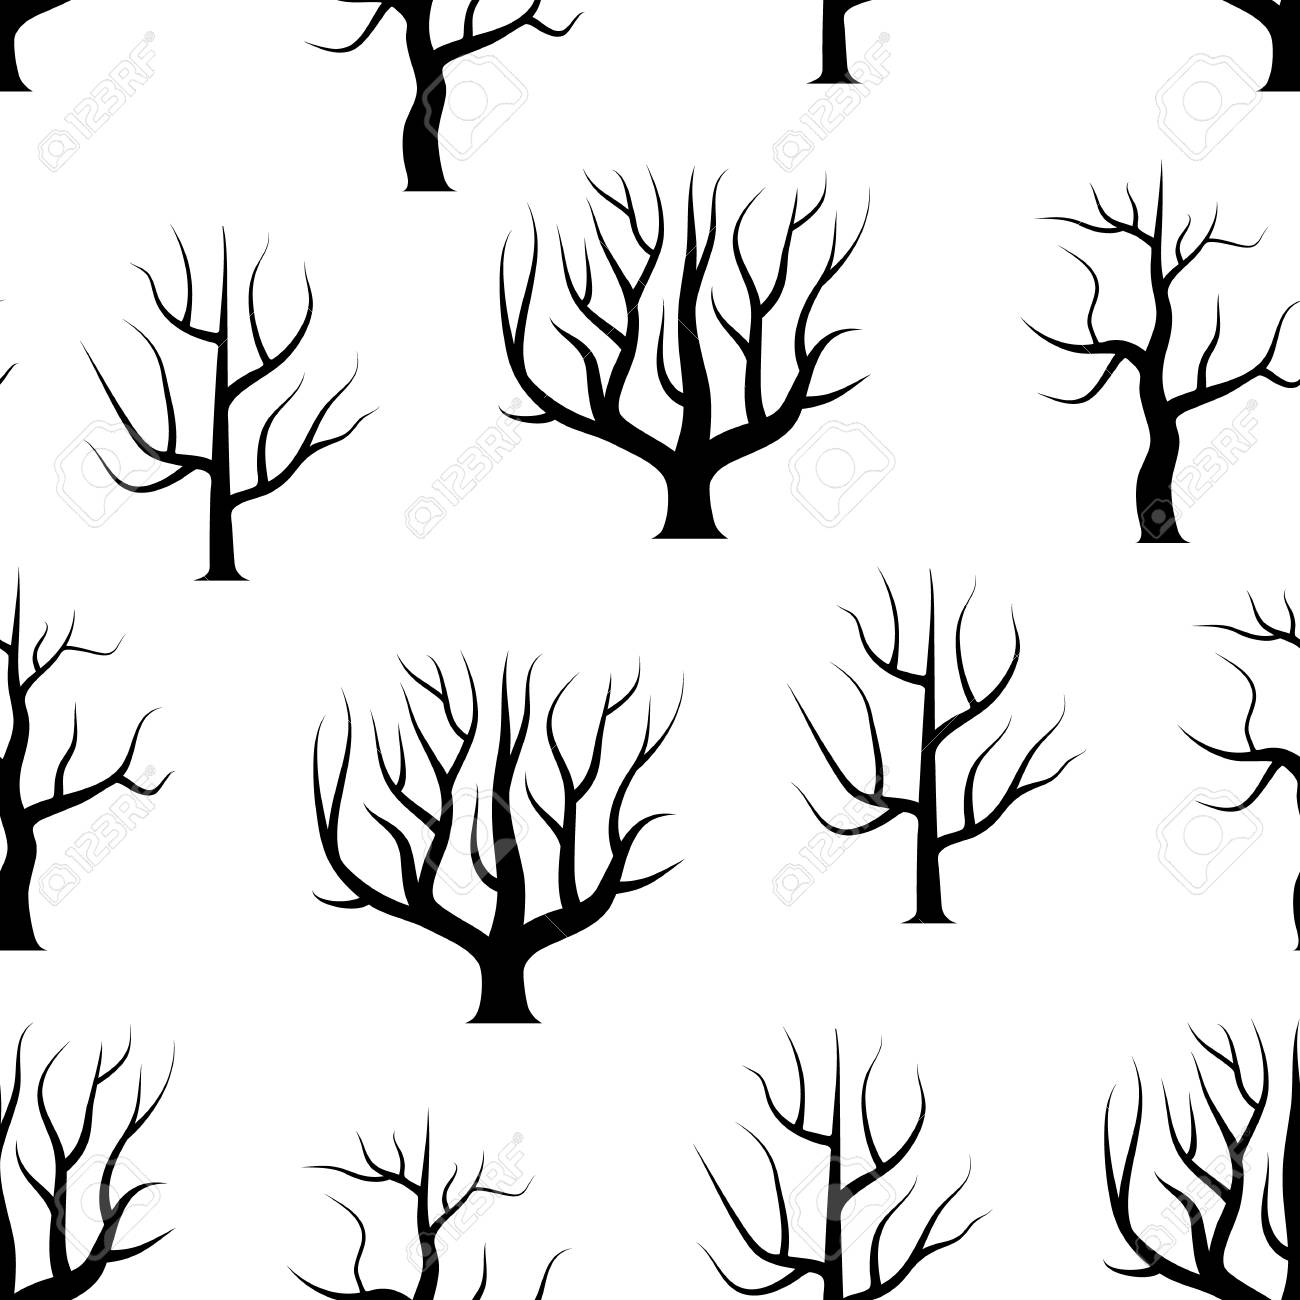 Black And White Curved Trees Without Leaves Royalty Free Cliparts